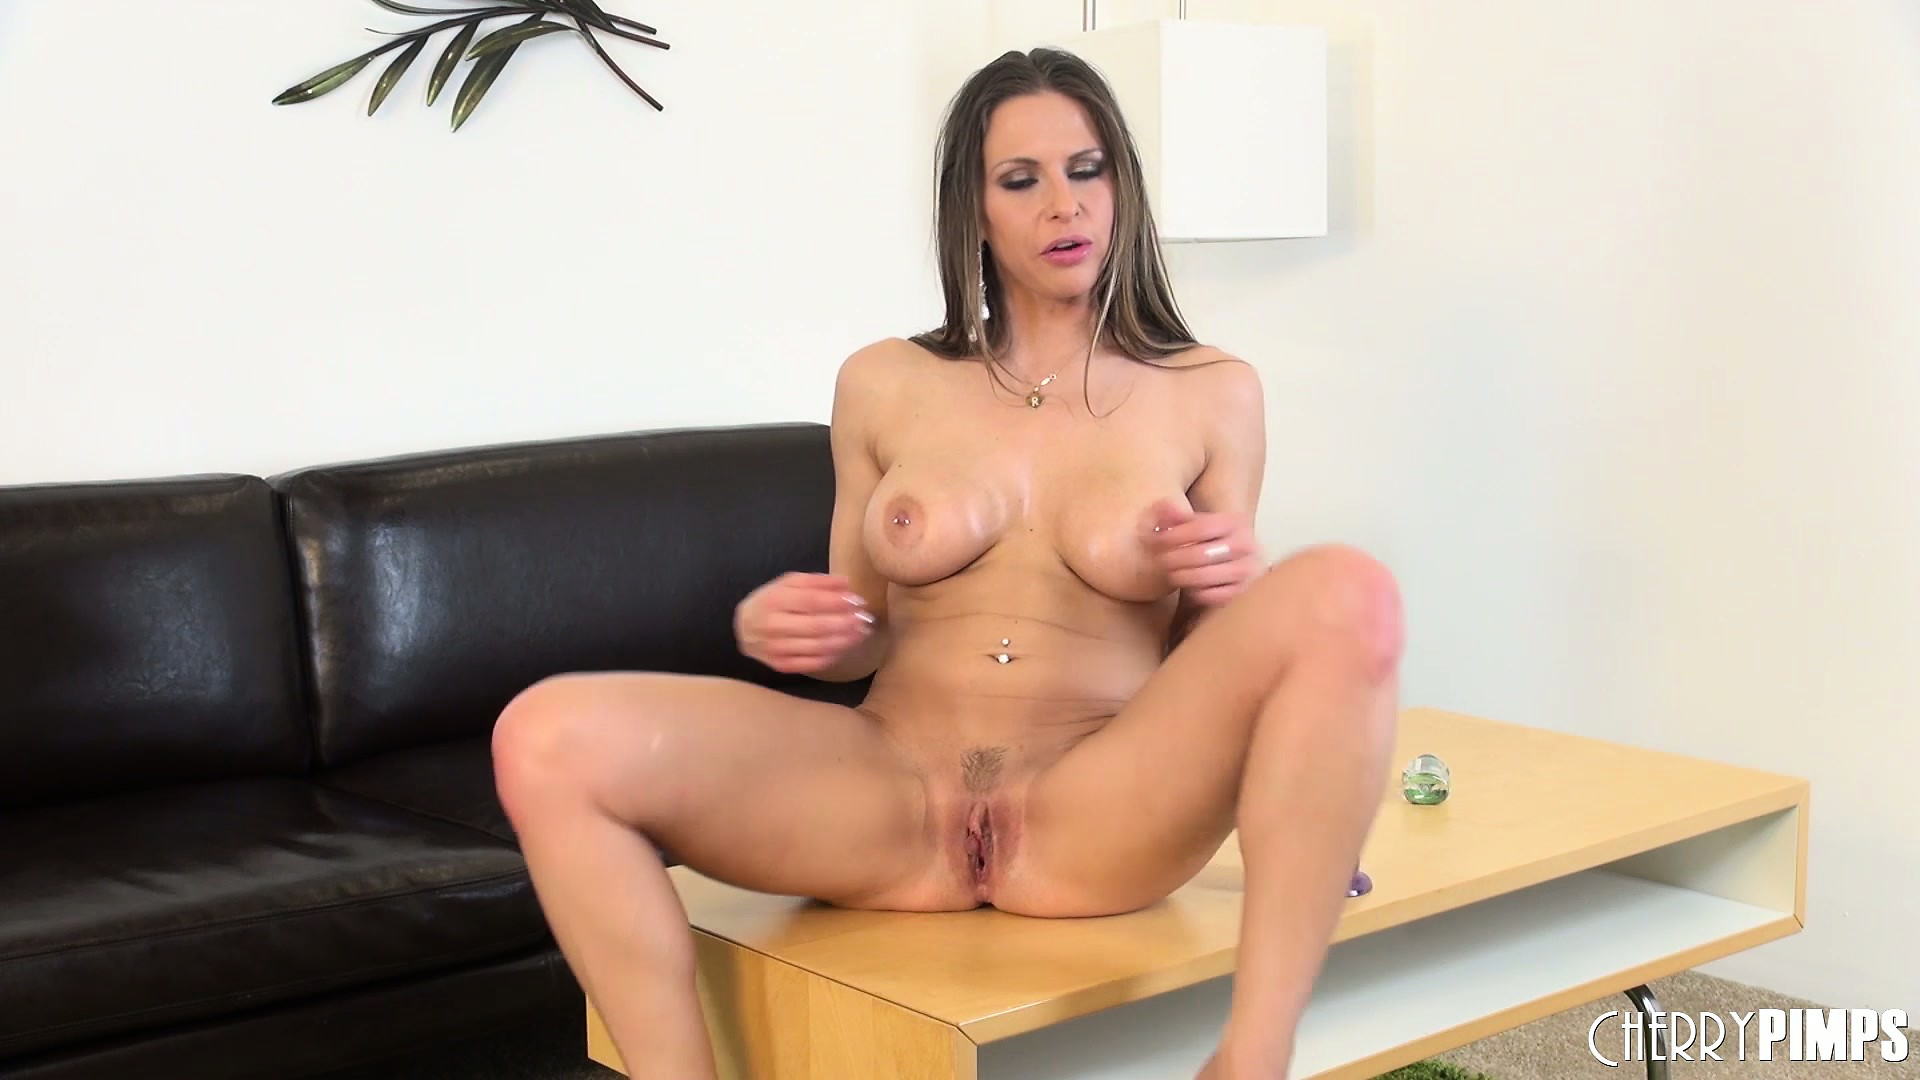 Porn Tube of Rachel Roxx Uses Her God Given Power Hooters To Grip A Fake Shaft